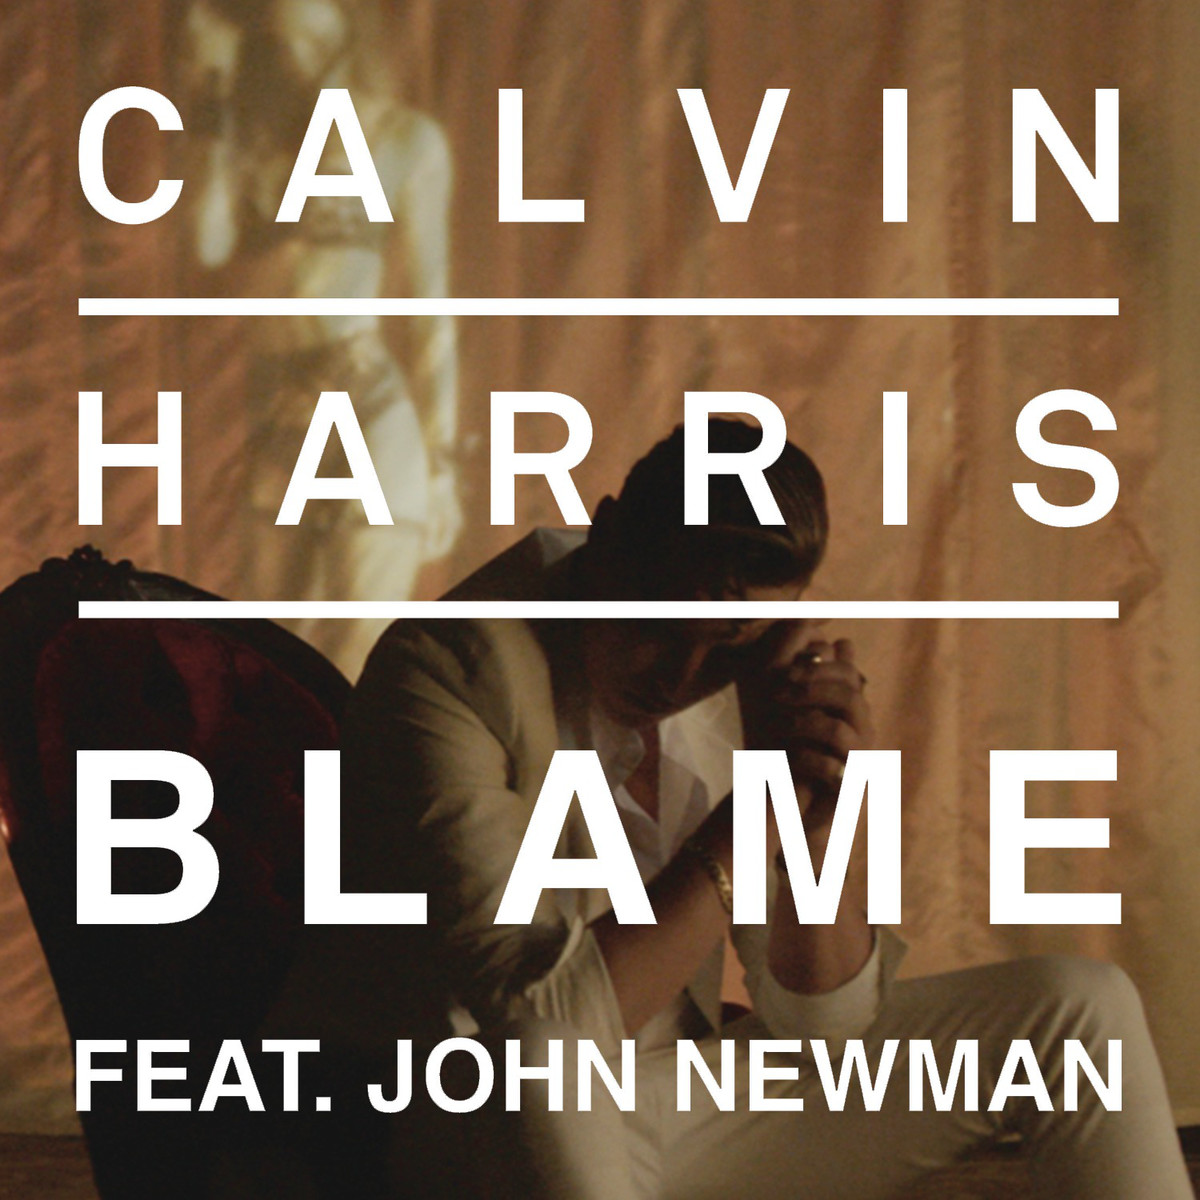 Calvin harris blame 2014 official 1200x1200